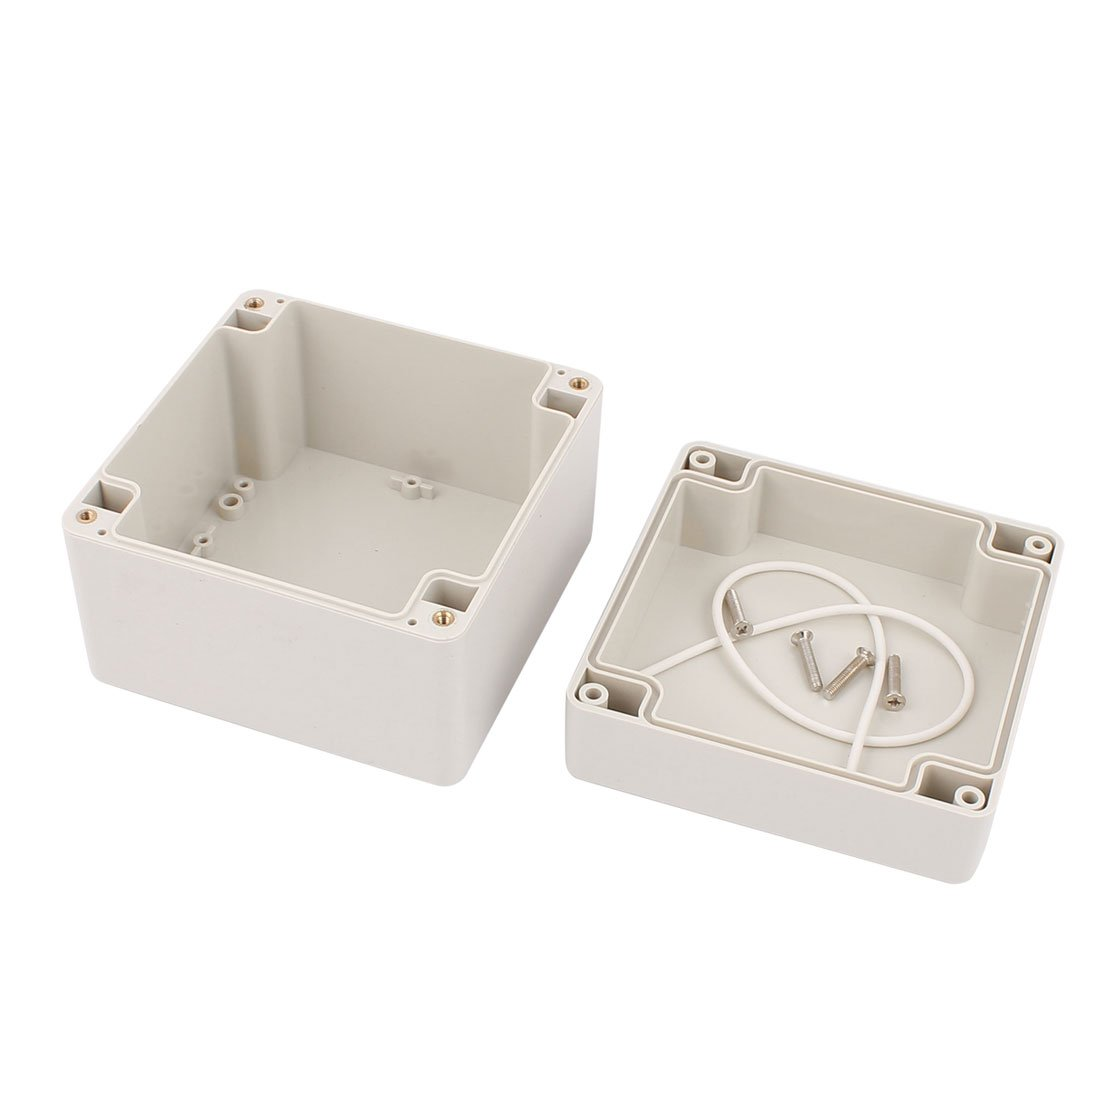 uxcell 120mm x 120mm x 90mm Rectangular Dustproof IP65 Plastic DIY Junction Box Case